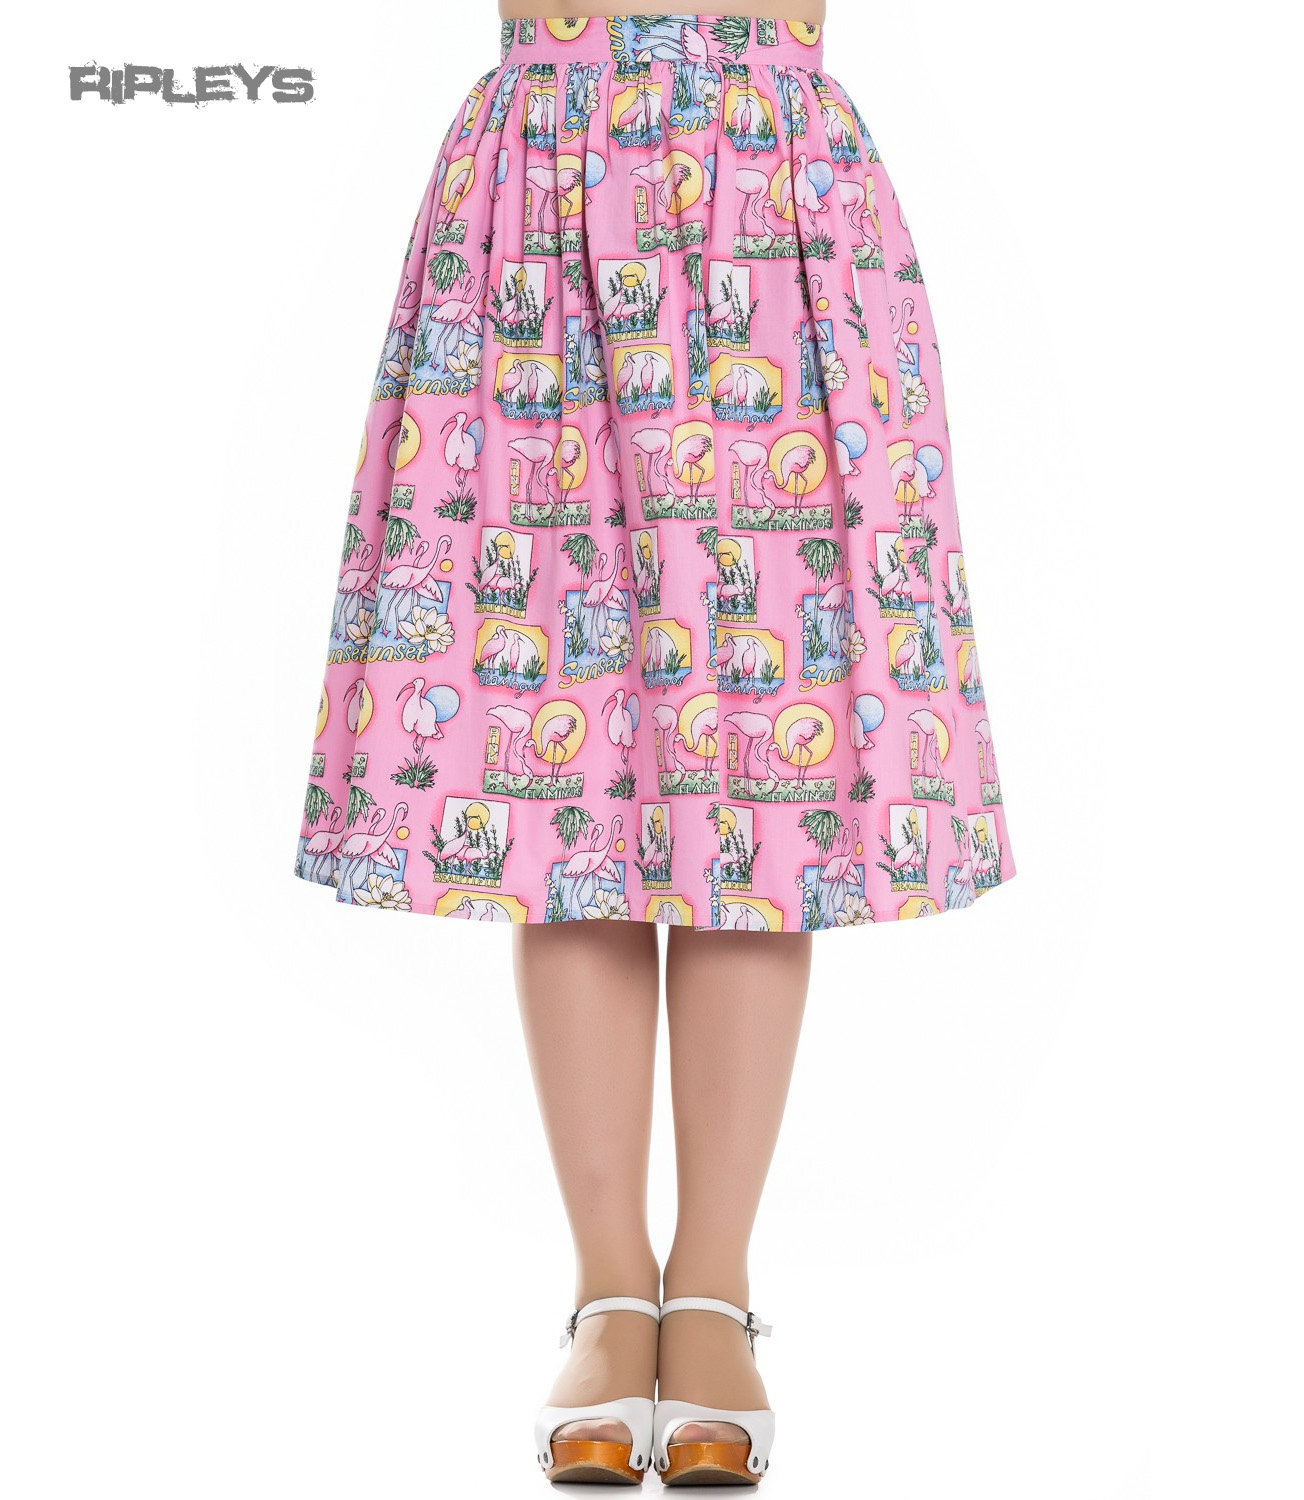 44718ce9b Sentinel Hell Bunny Vintage Pin Up Rockabilly 50s Skirt MAXINE Pink  Flamingos All Sizes